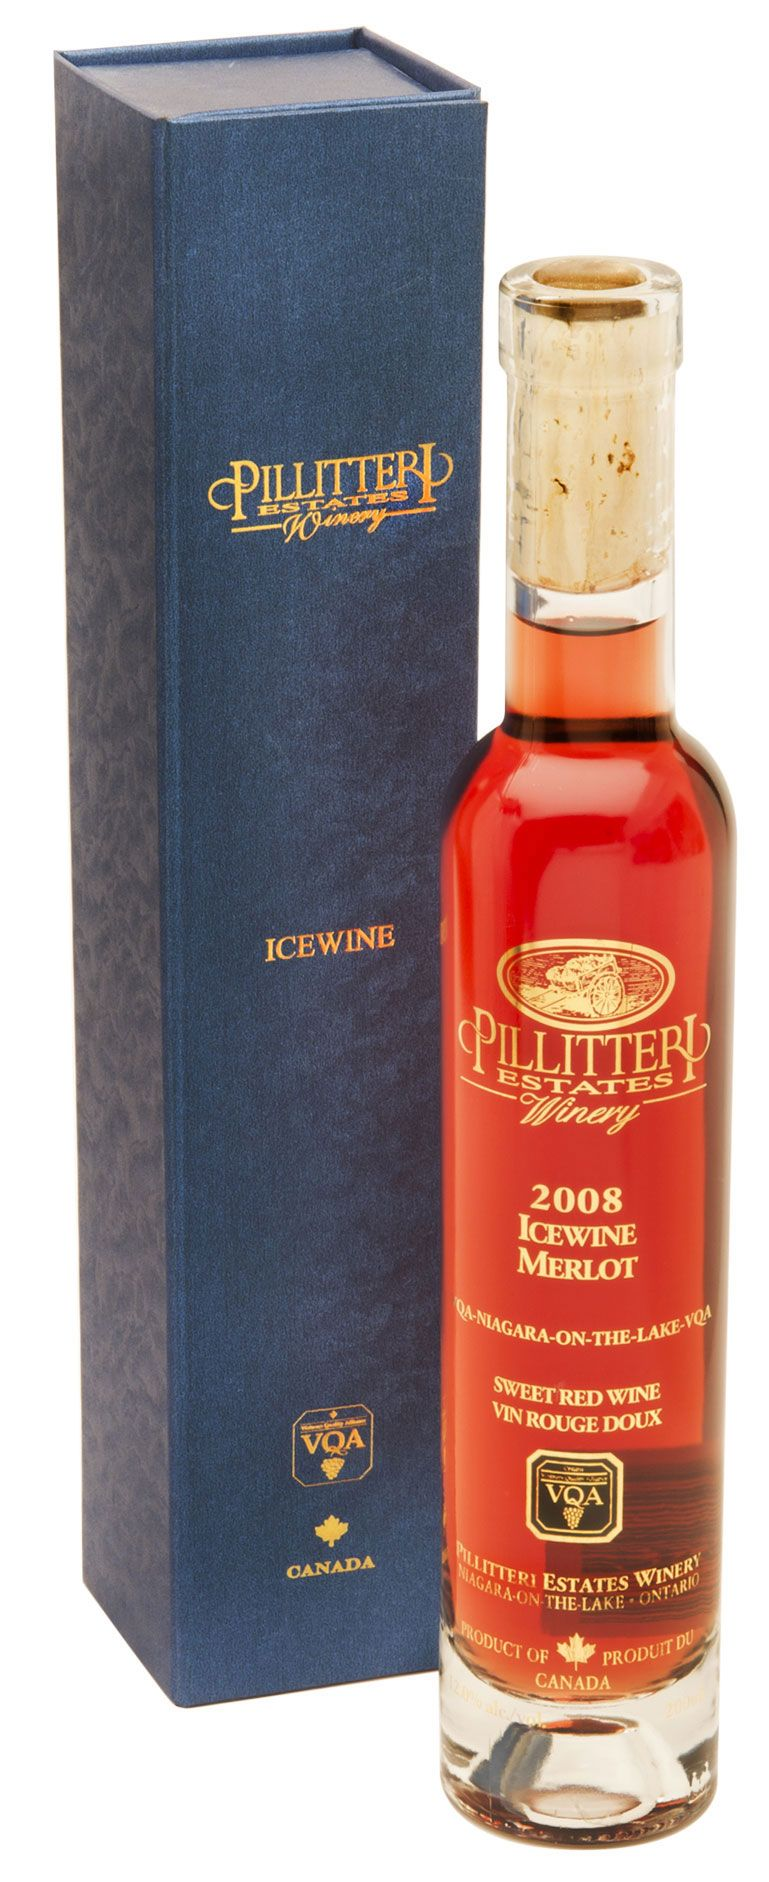 Red Icewine Pillitteri S Merlot Icewine Wine Ice Wine Sweet Red Wines Wine Bottle